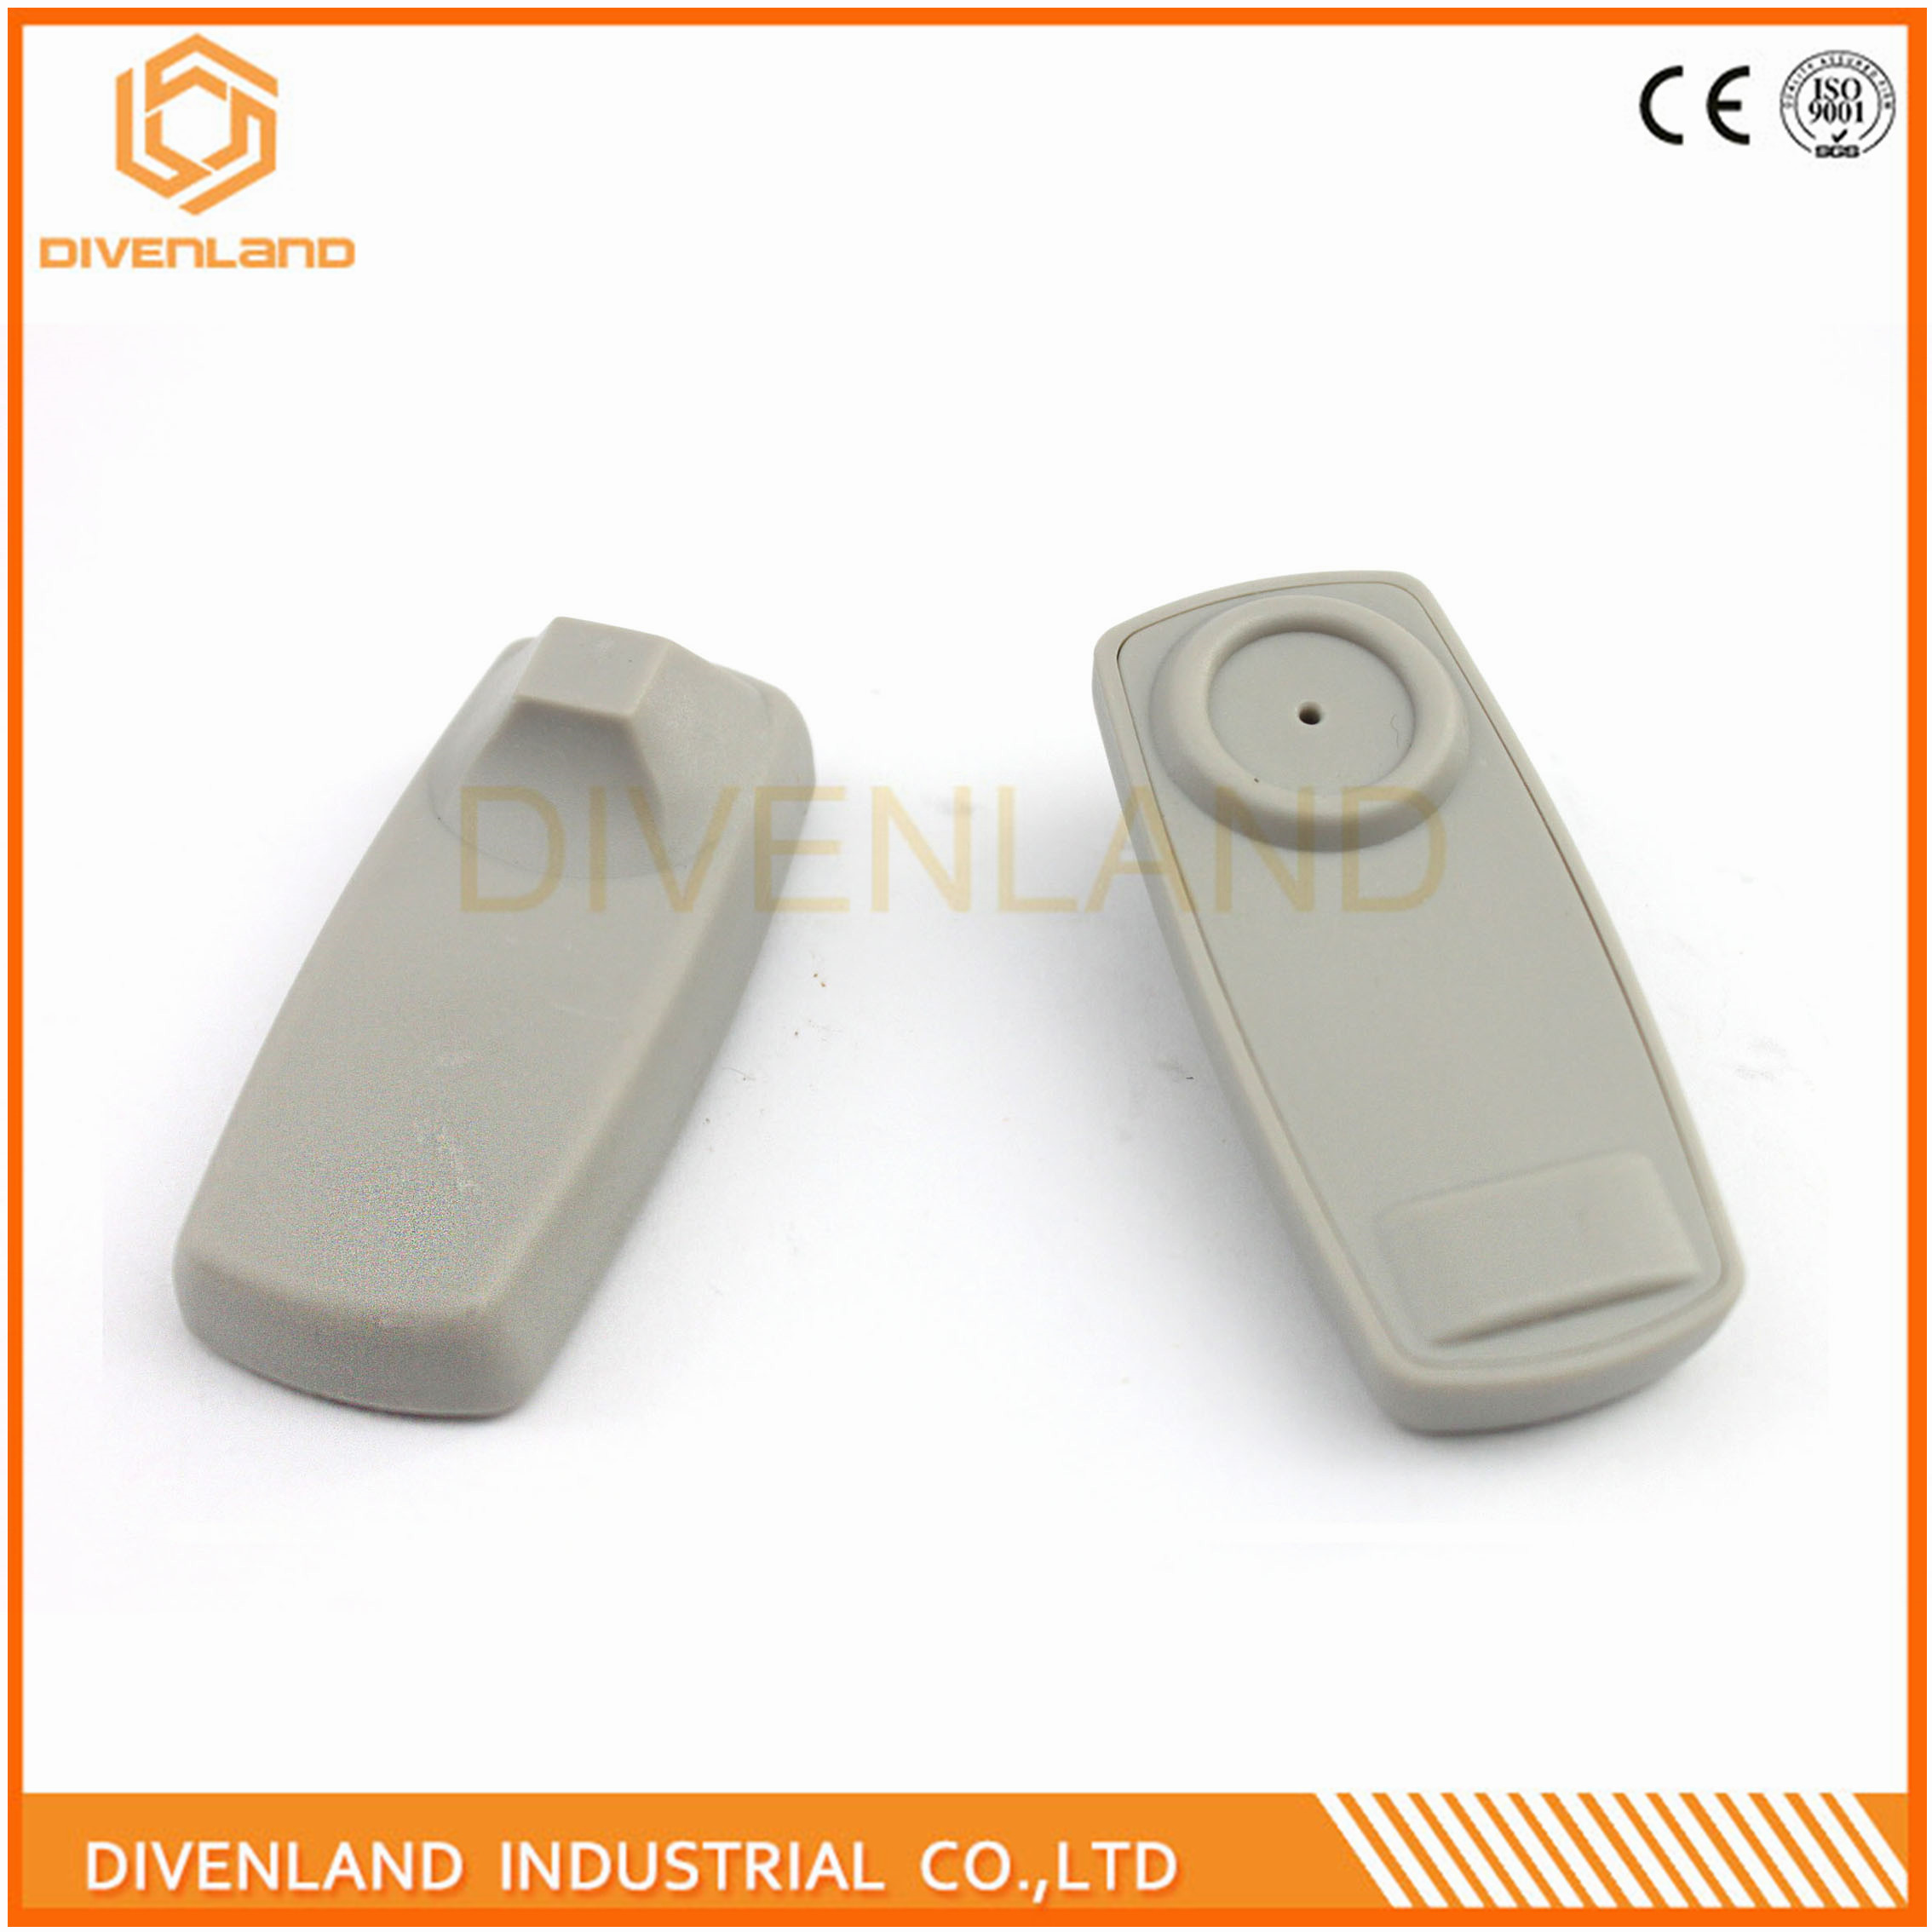 EAS security checkpoint alarm tag Featured Image